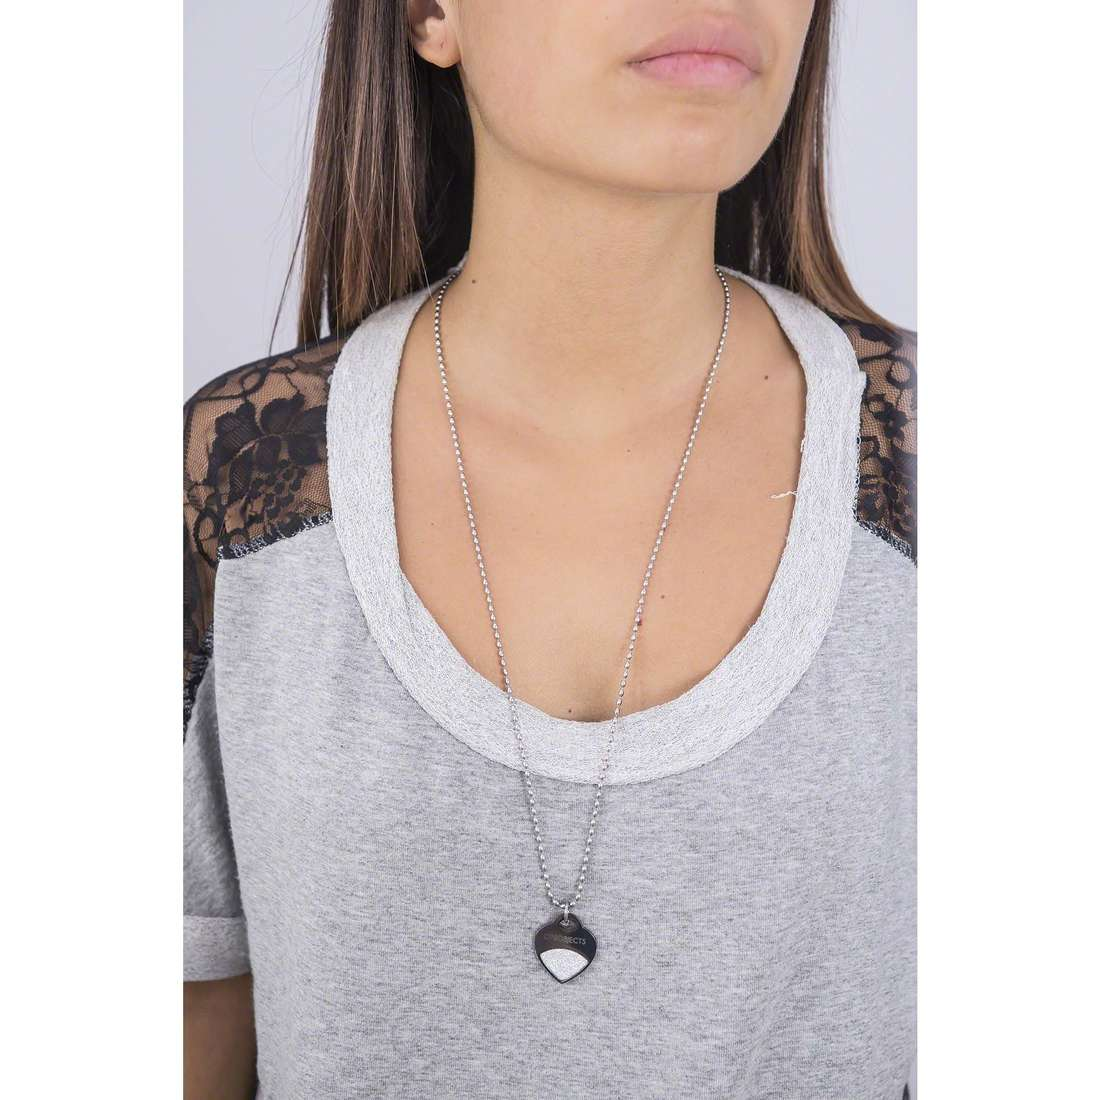 Ops Objects necklaces Glitter woman OPSCL-353 indosso